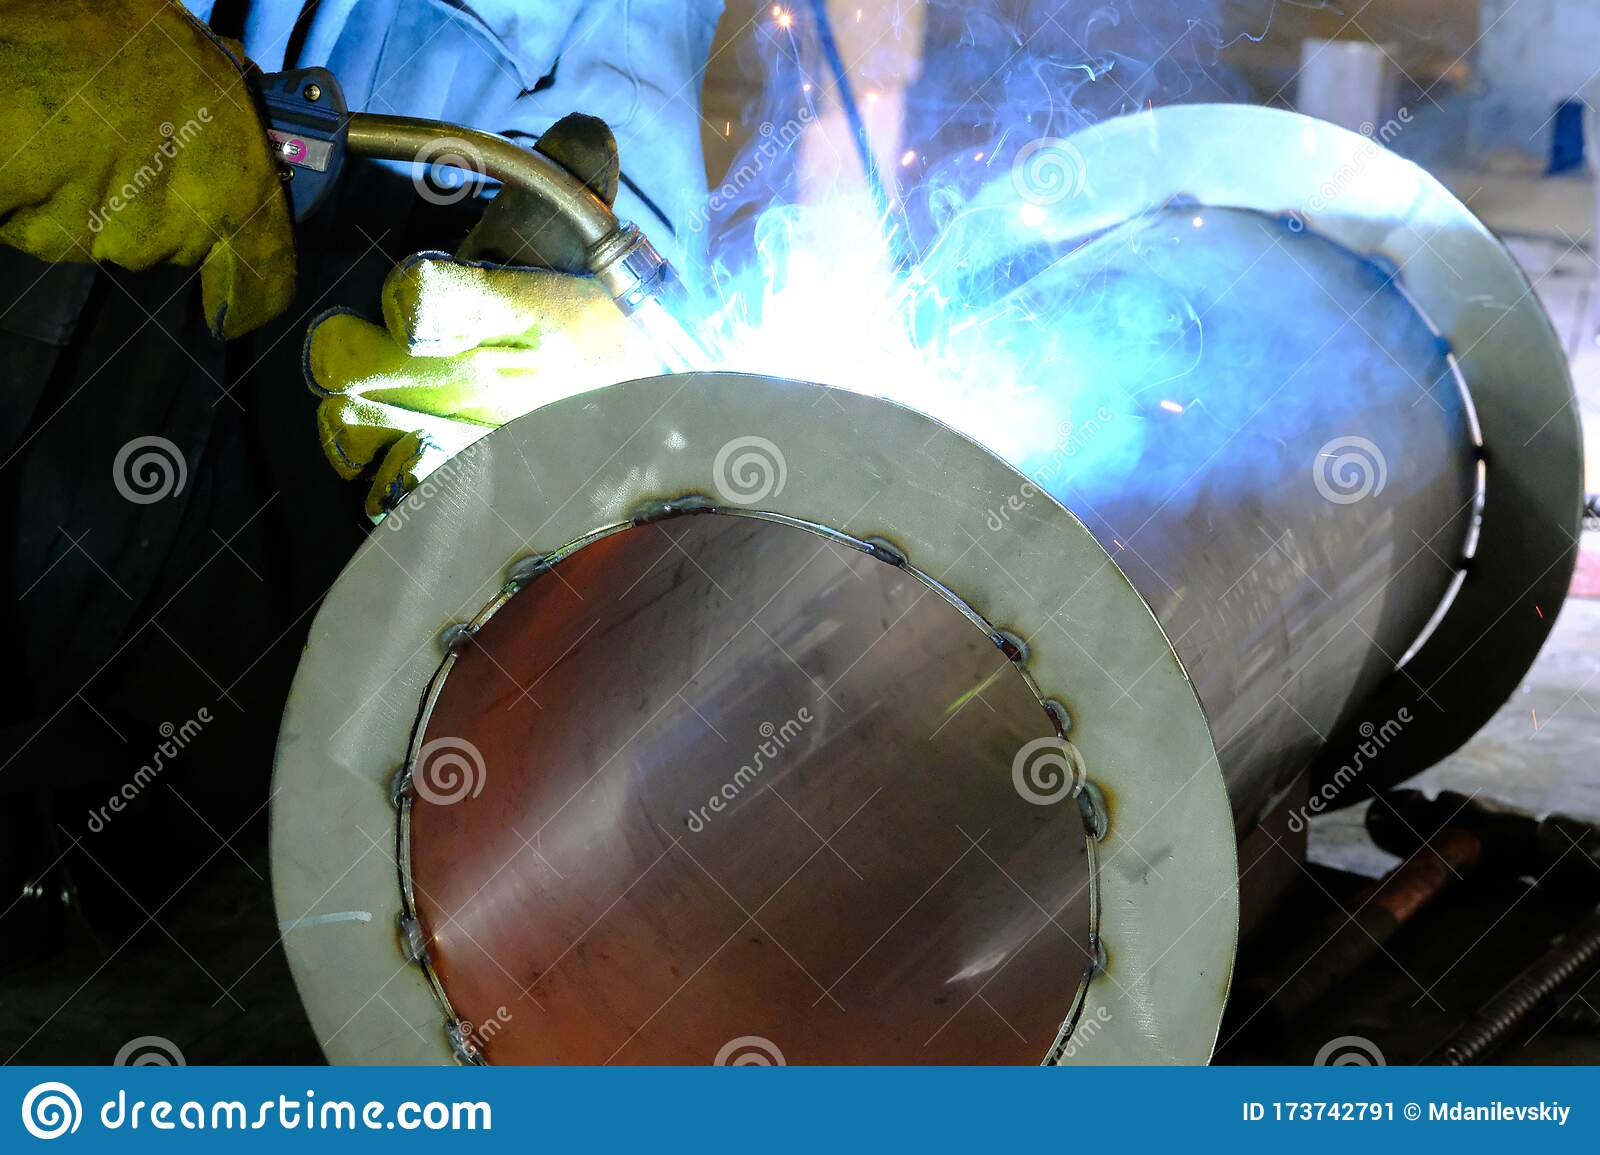 Welding Stainless Steel Pipes Using Semi Automatic Arc Welding Stock Image Image Of Lights Essence 173742791